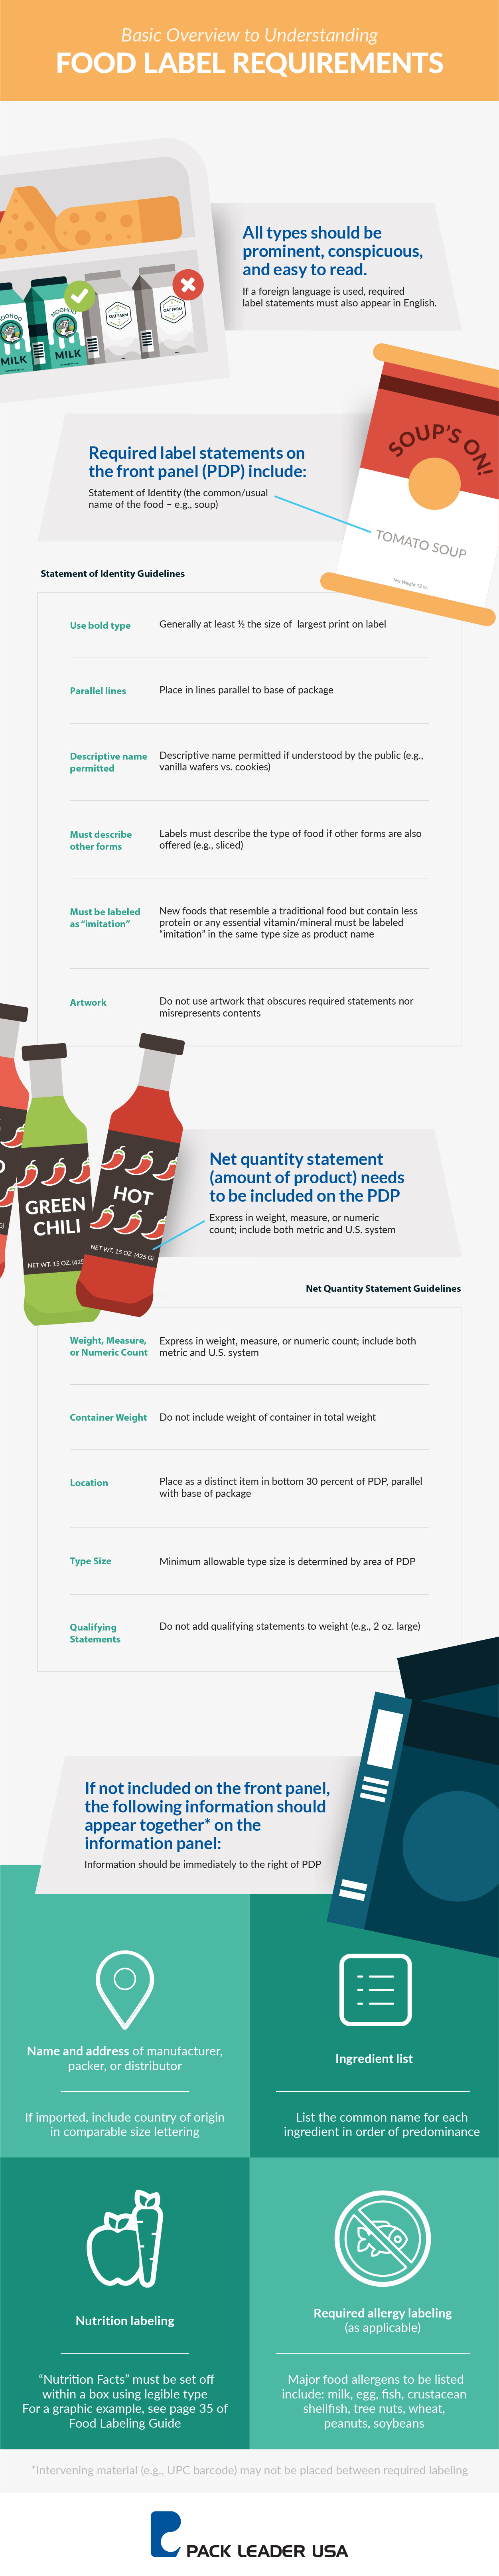 FDAFoodLabelingRequirements_Infographic